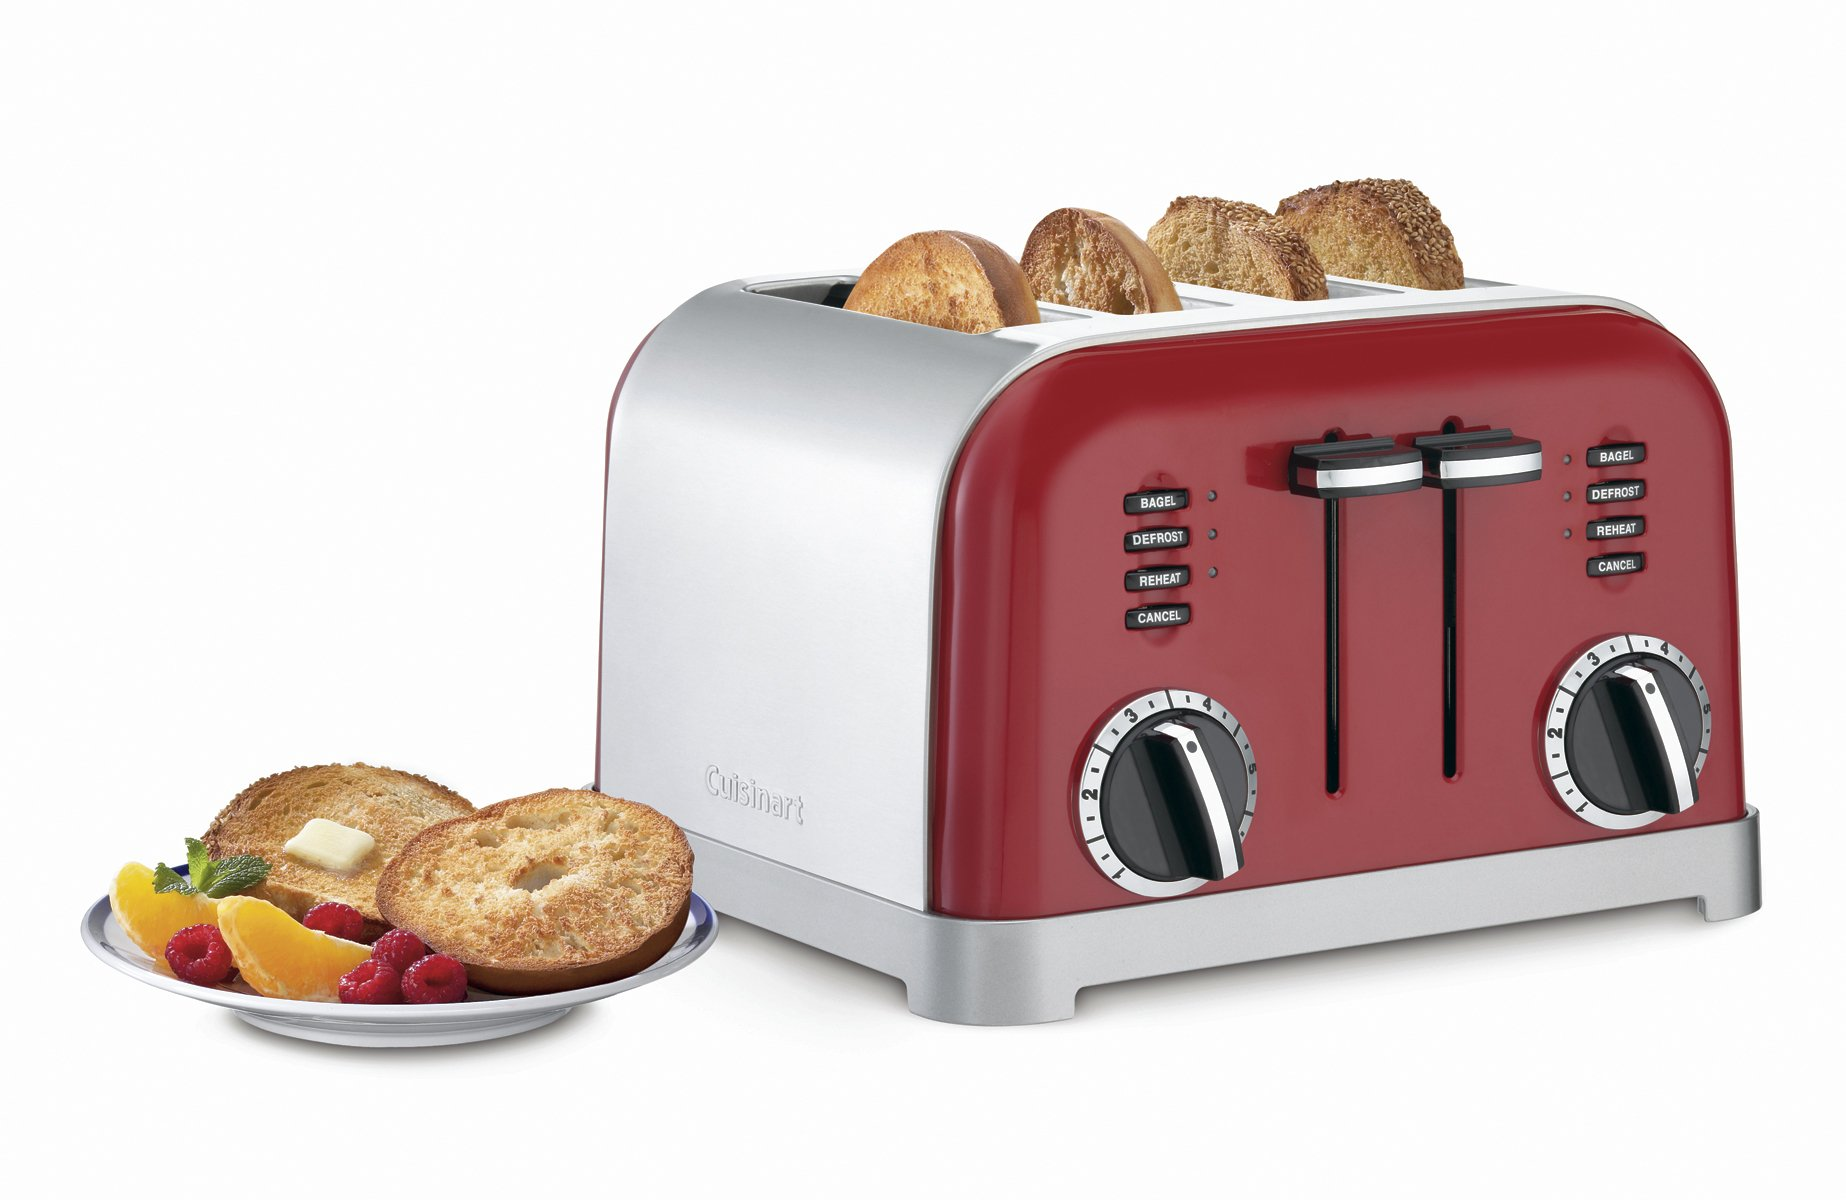 Cuisinart CPT-180MR Classic 4-Slice Toaster, Metallic Red by Cuisinart